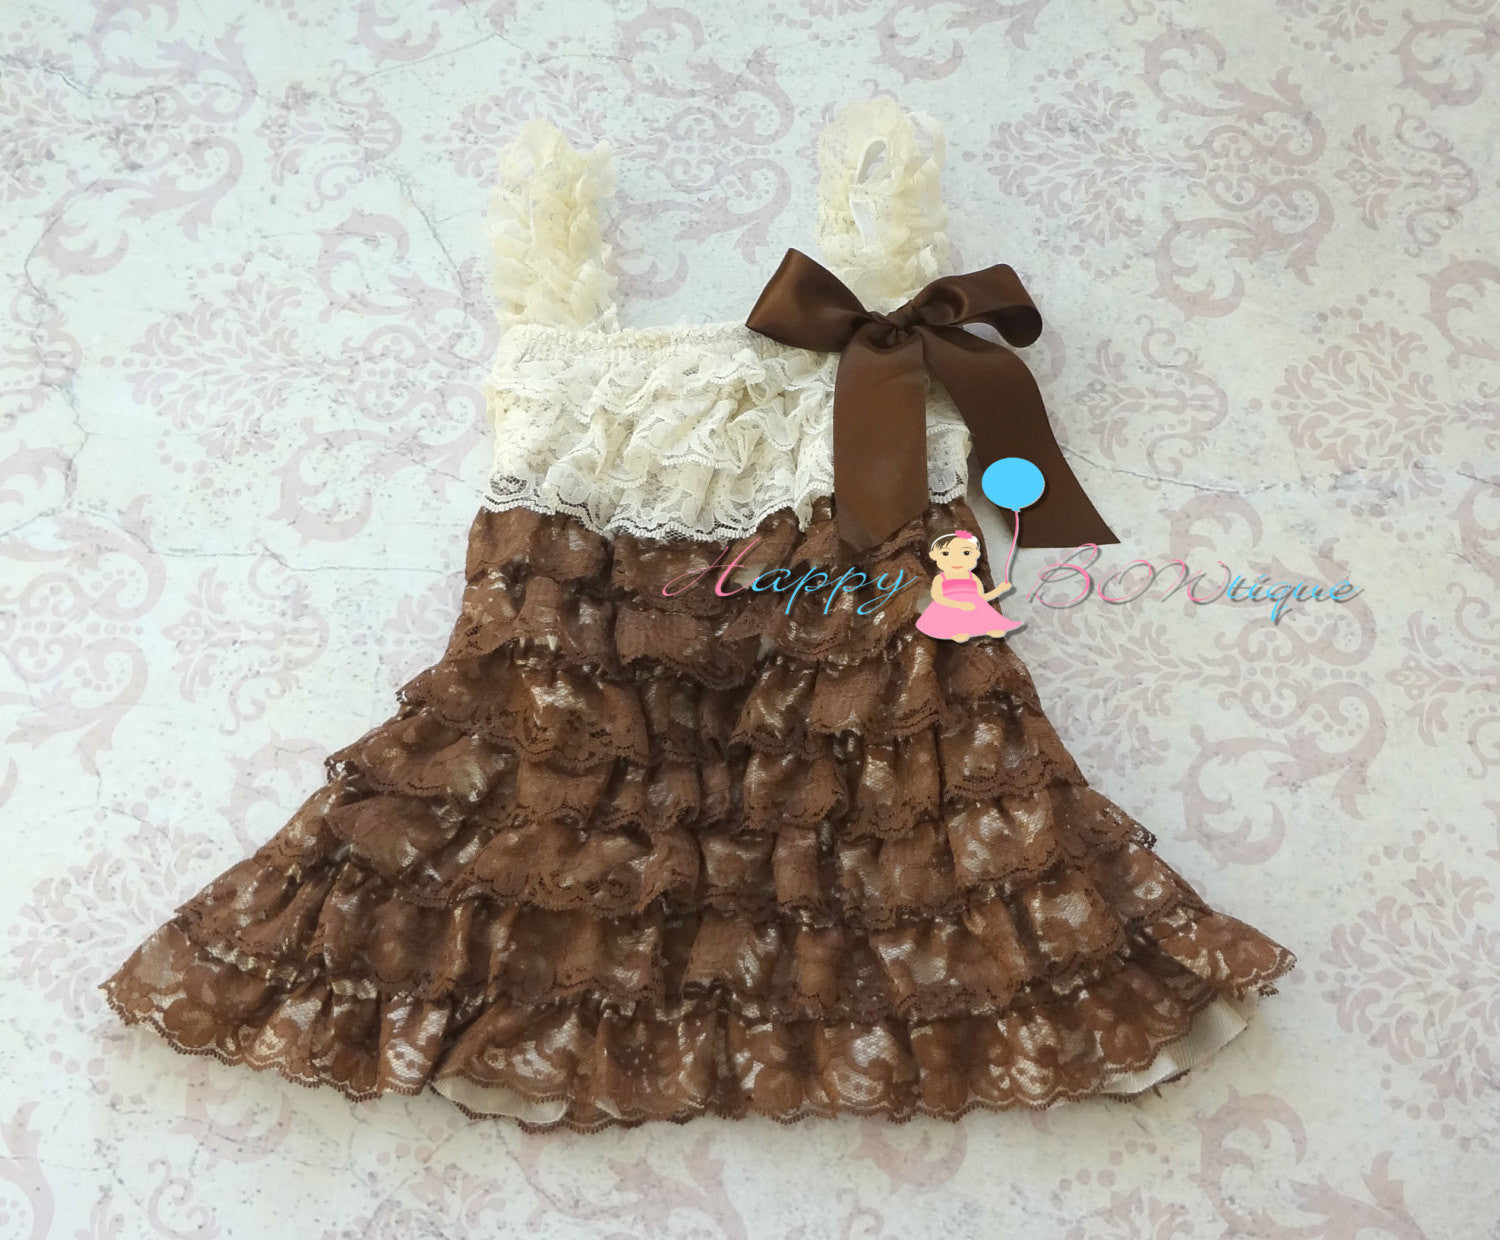 Chocolate beige Fall Teal lace dress - Happy BOWtique - children's clothing, Baby Girl clothing